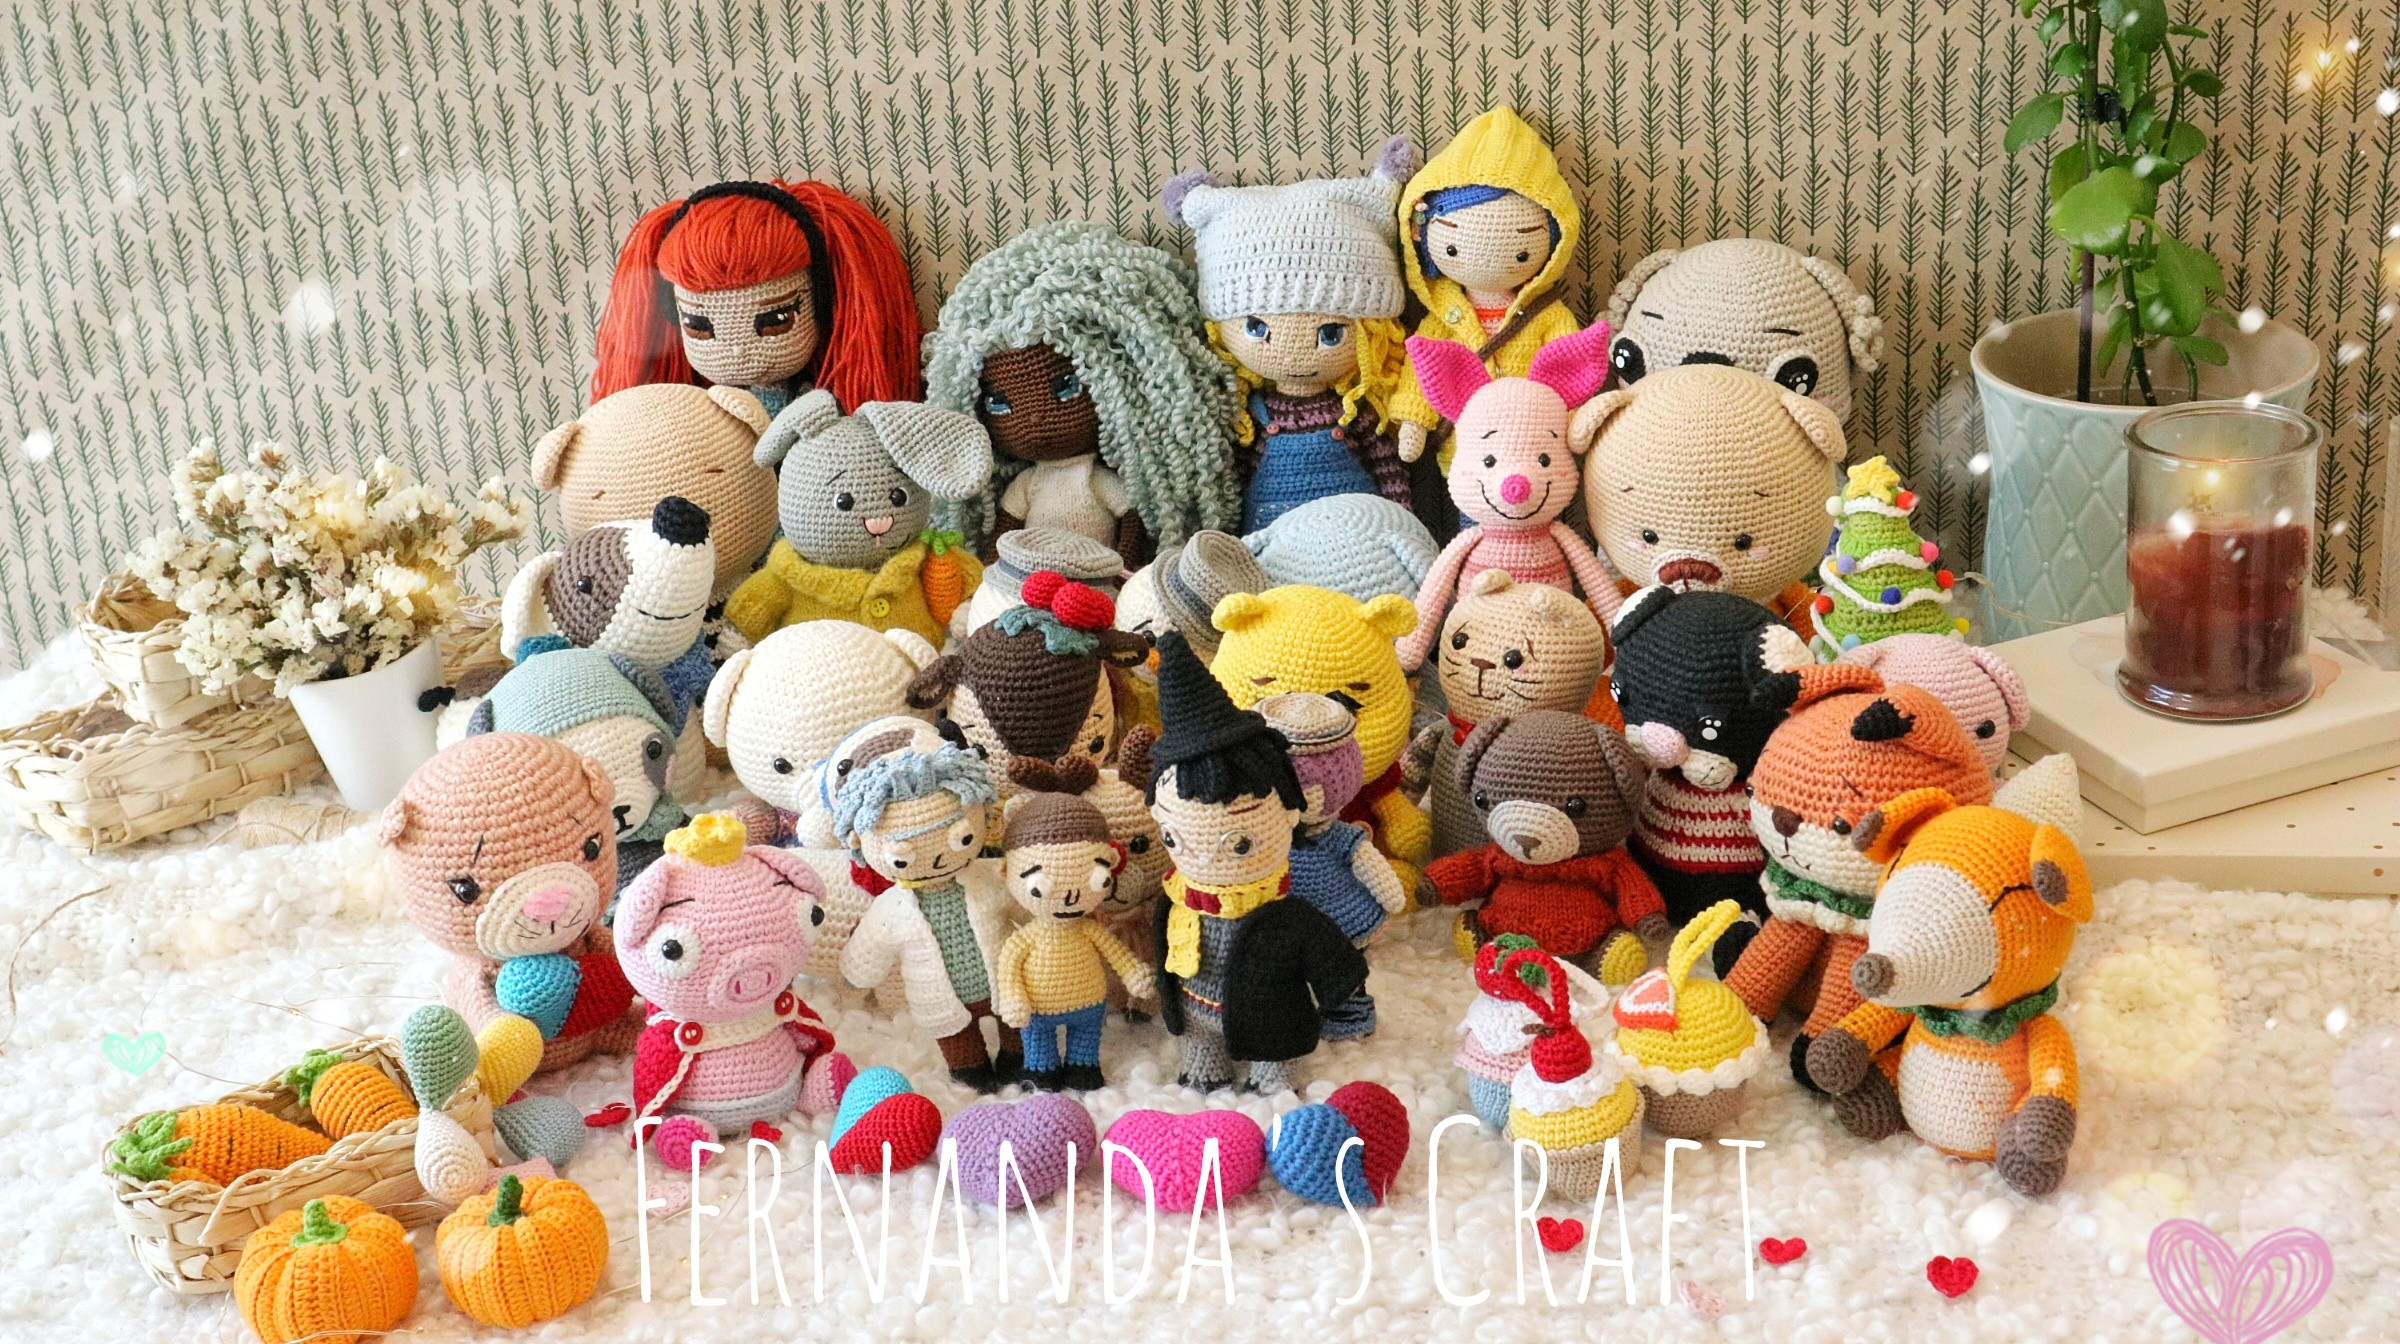 Collection of handmade dolls with crochet crochet technique